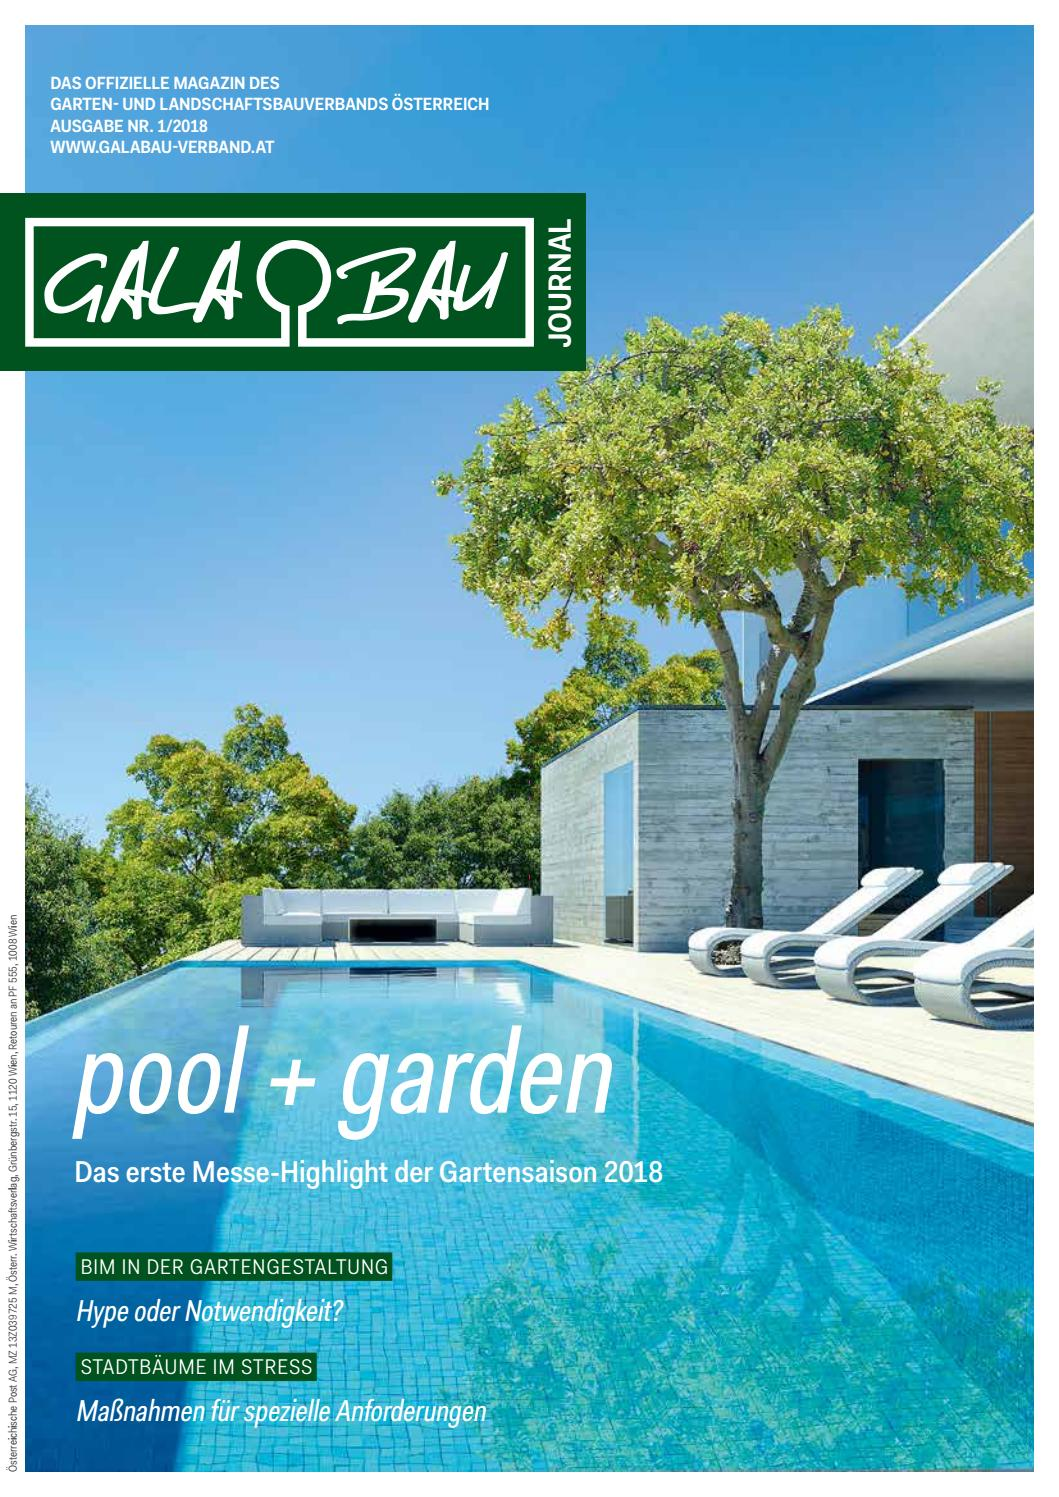 Pool Garten Messe Tulln Galabau Journal By Galabauverband Issuu